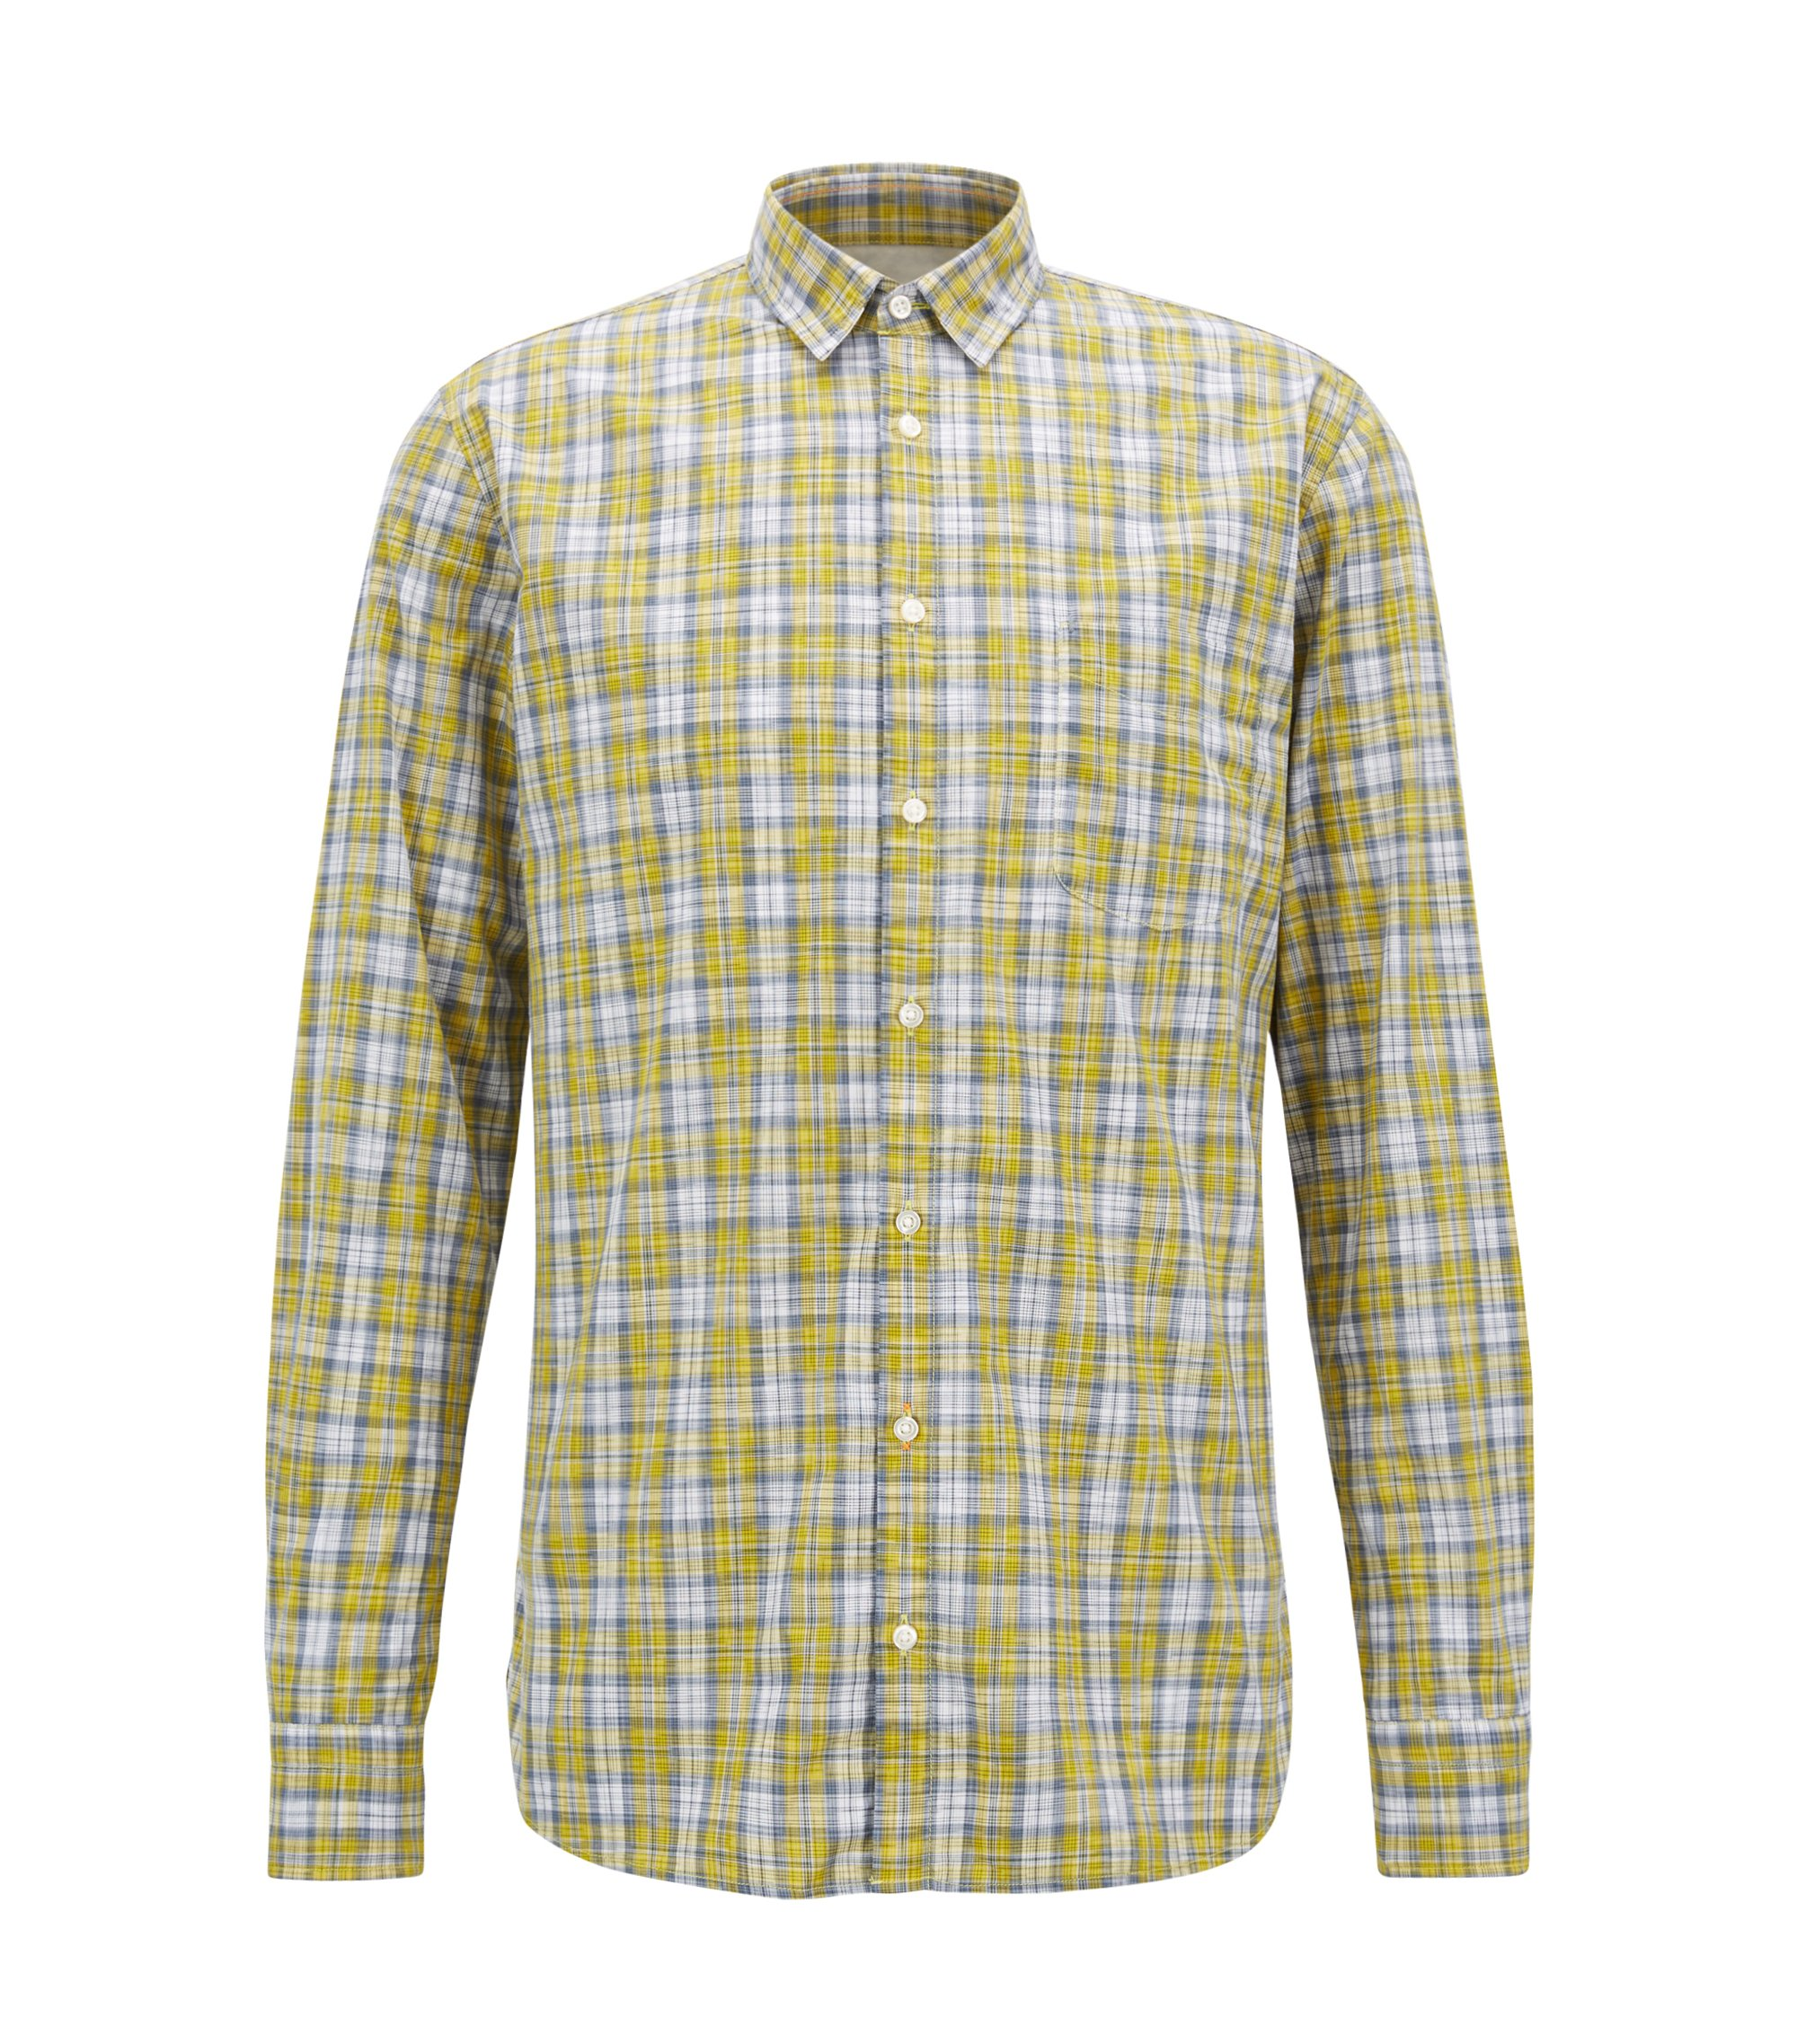 Camicia in cotone slim fit a quadri policromi, Giallo